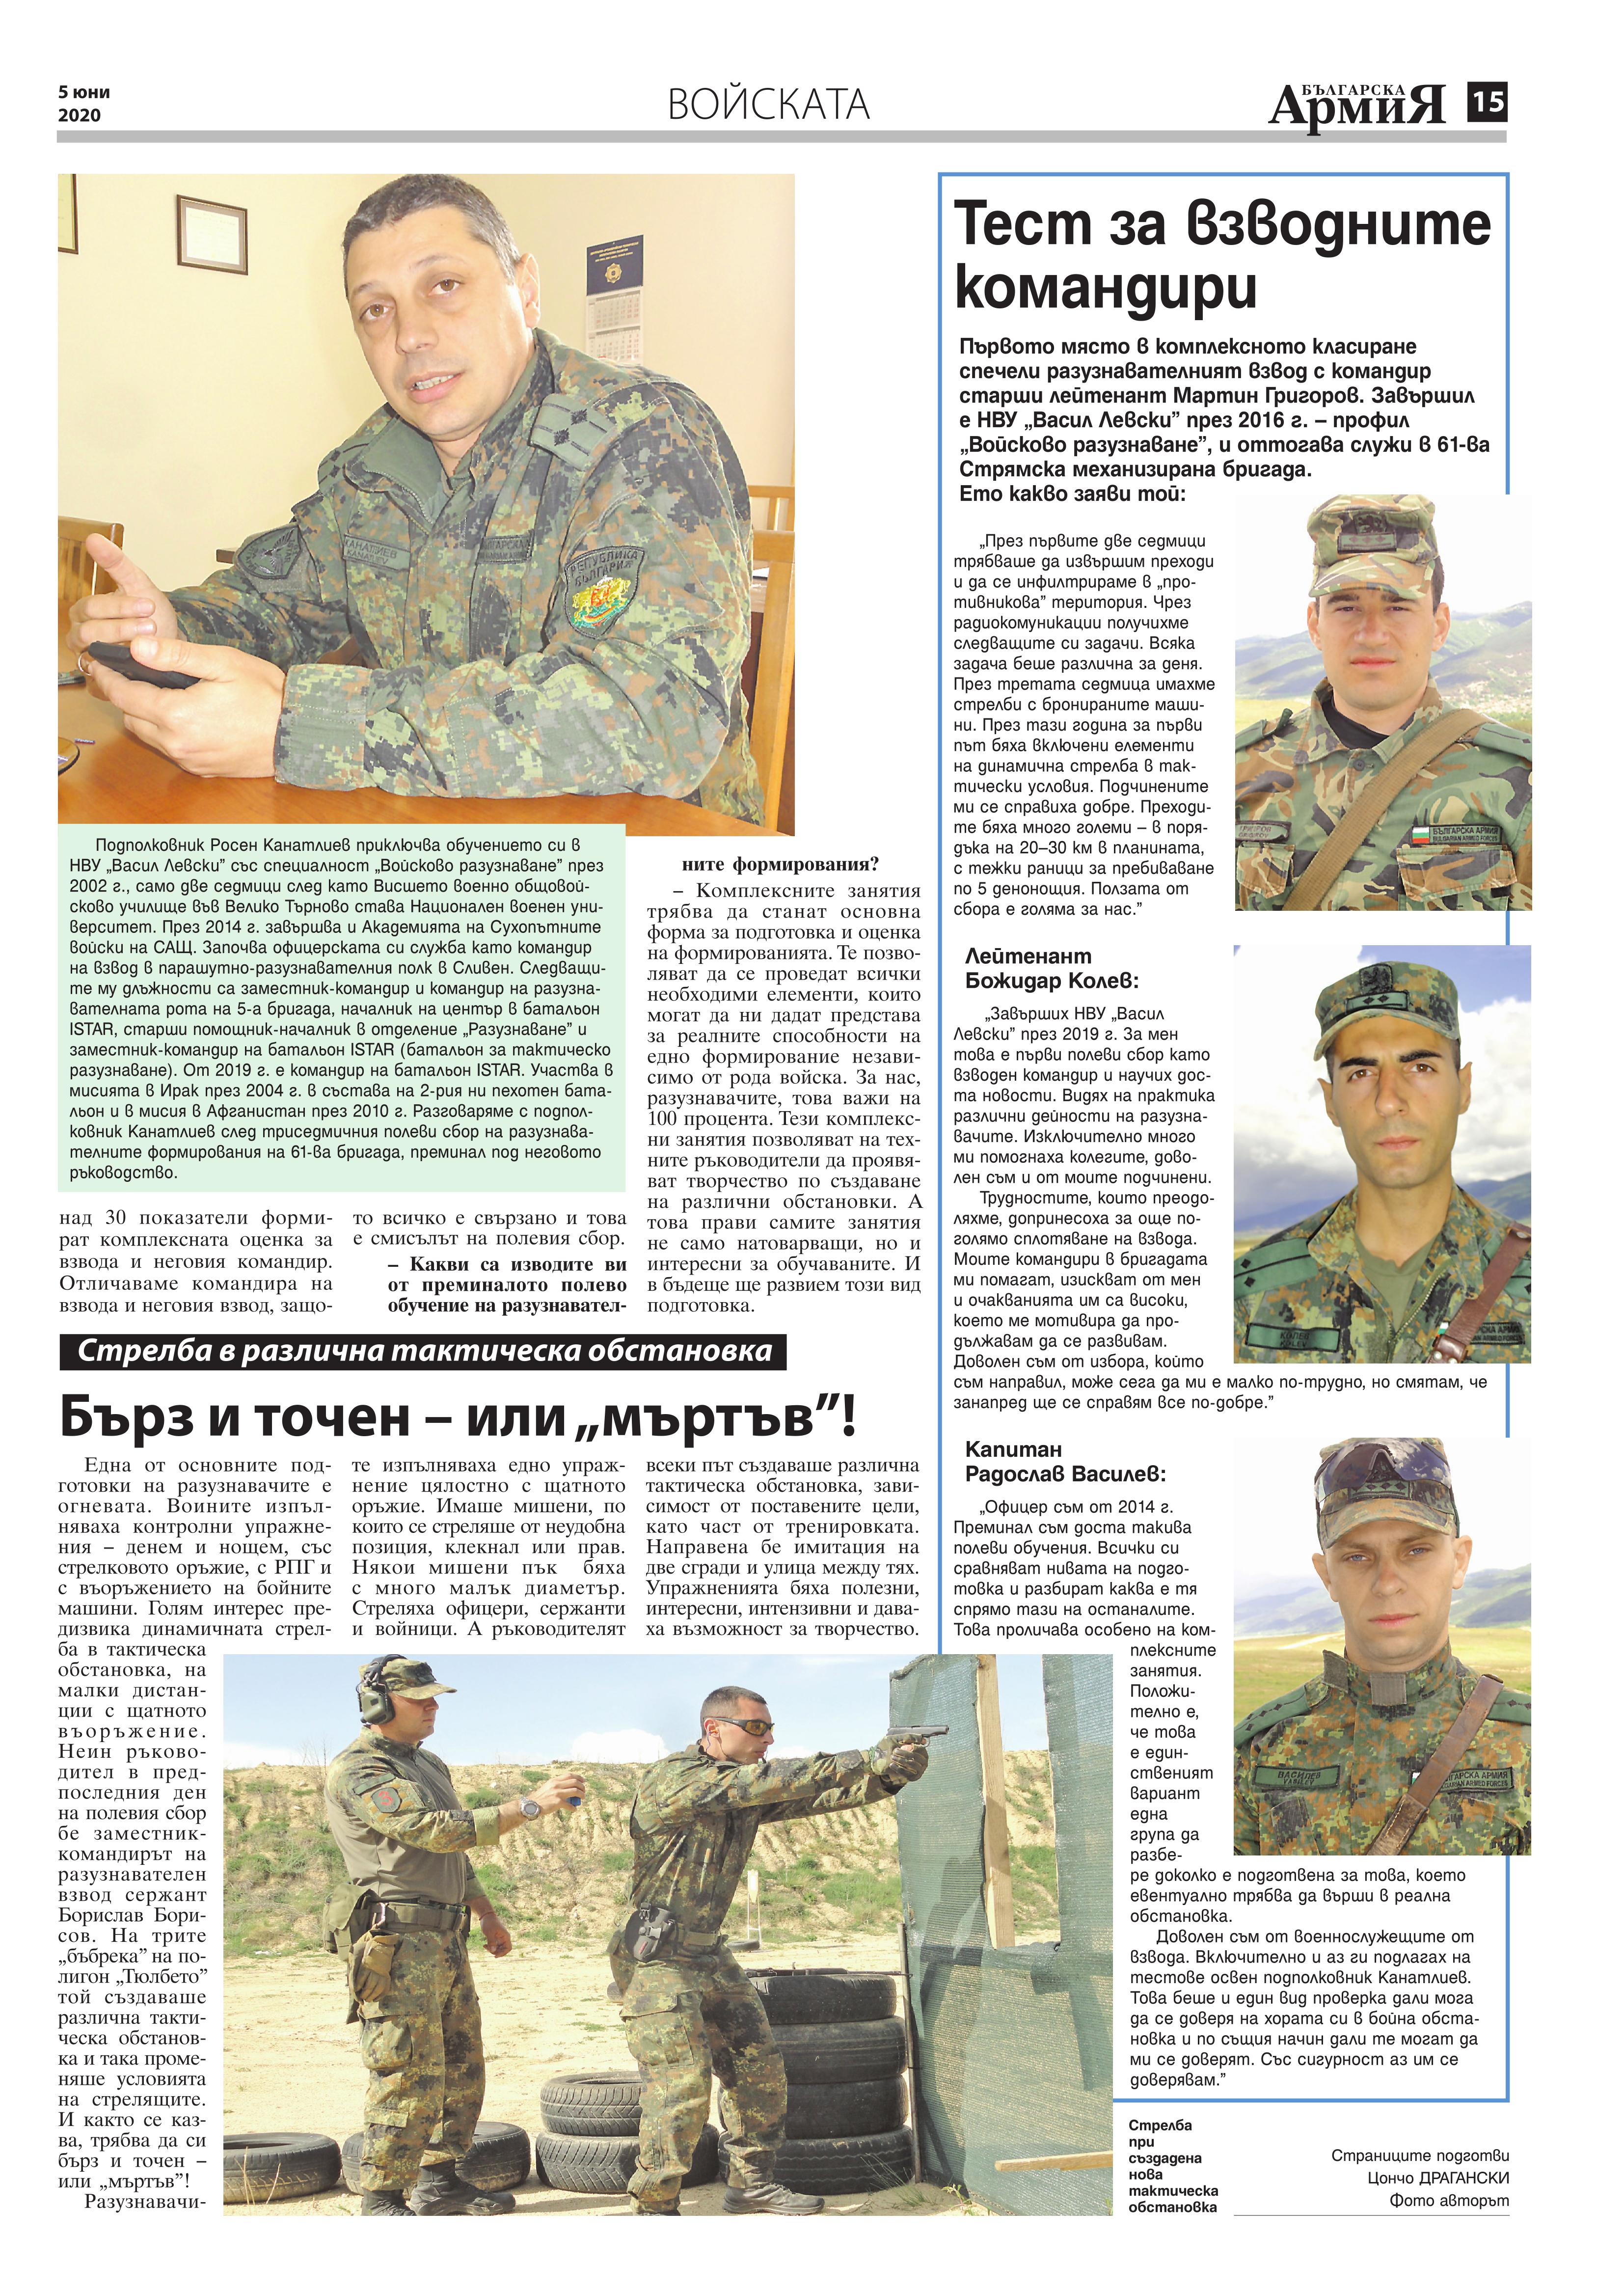 https://www.armymedia.bg/wp-content/uploads/2015/06/15.page1_-142.jpg